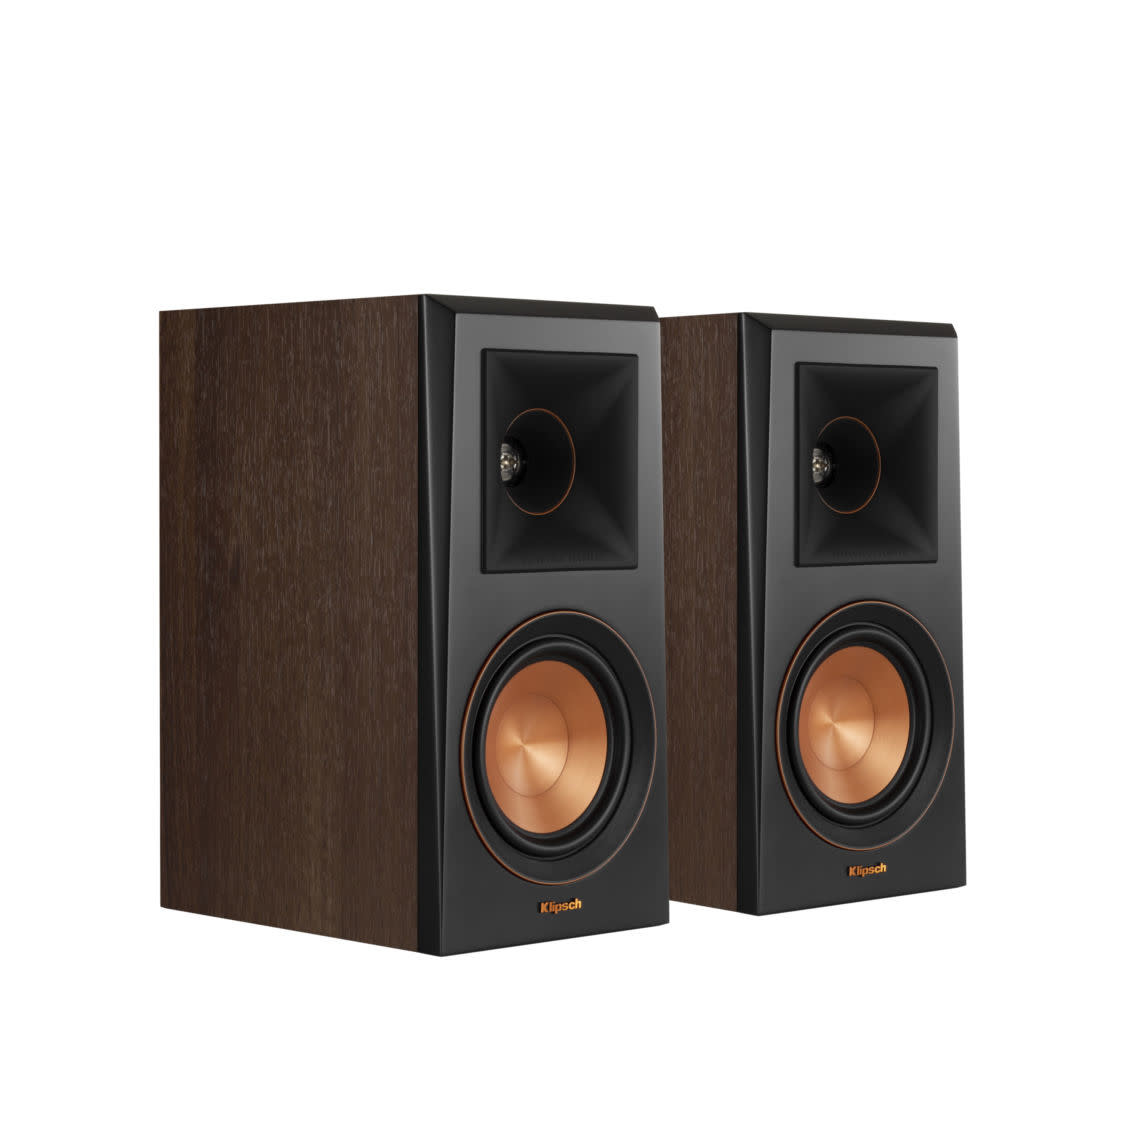 Klipsch Klipsch RP-500M Bookshelf Speakers (Ebony Pair)